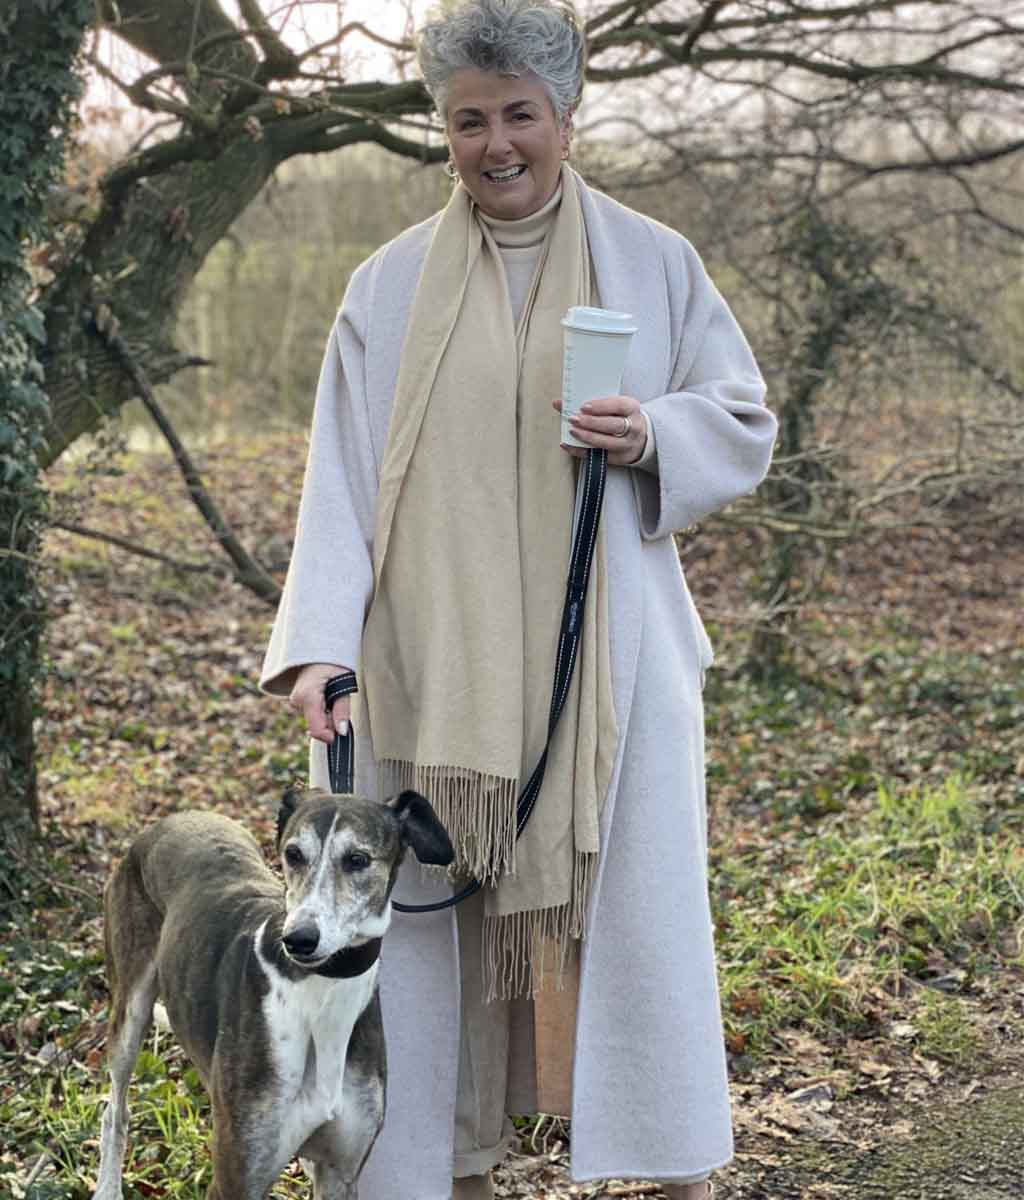 Photo showing Maxine Laceby standing outside by a tree, she is smiling and wearing a long cream coat and holding a reusable coffee cup, and her lurcher Rosie is standing by her